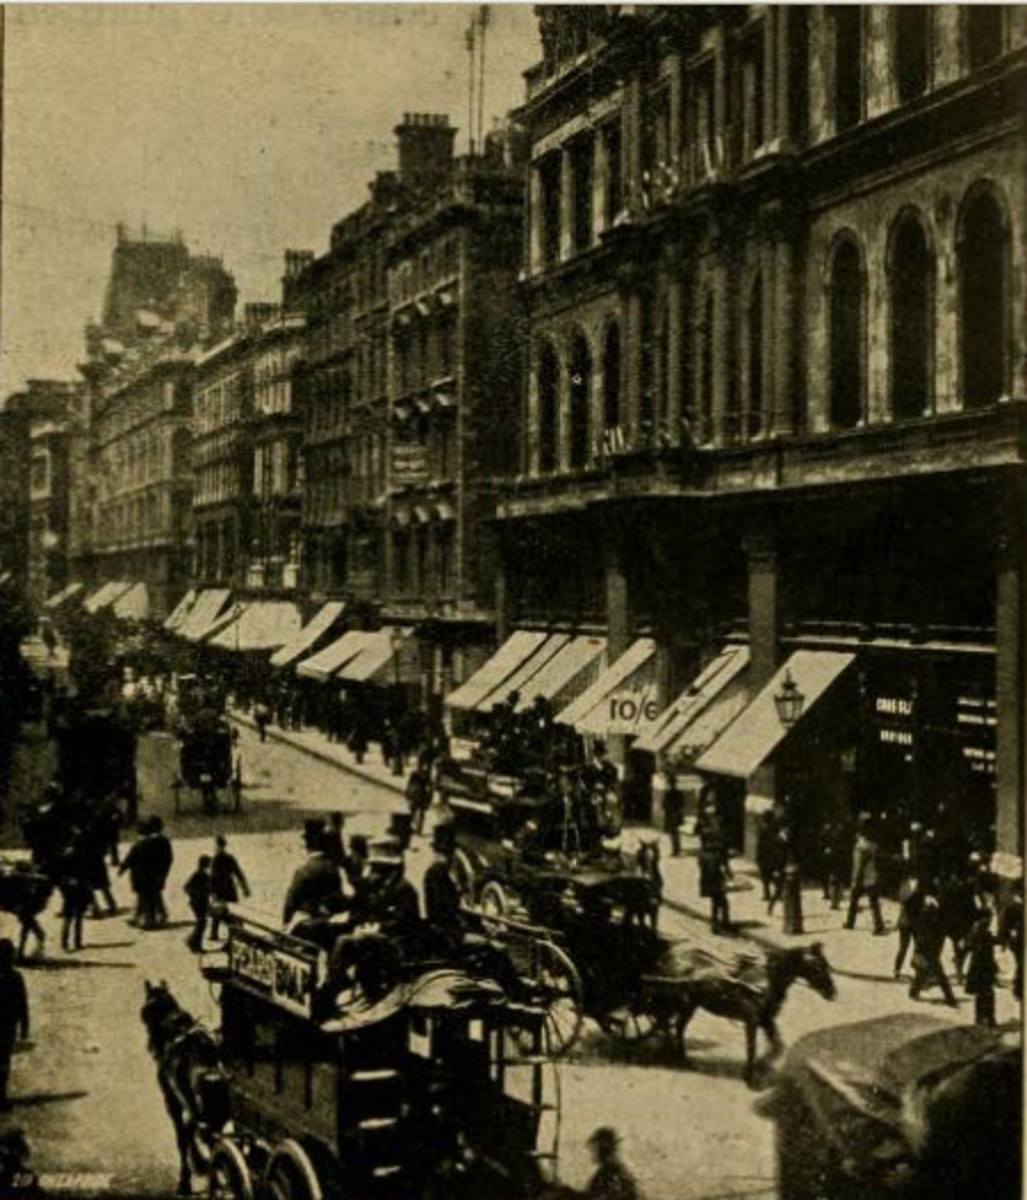 Cheapside, London. The name derives from an old word for market place. The area was then renowned for its shops - streets branching off of the main street were named Bread, Poultry, etc after the goods sold on them